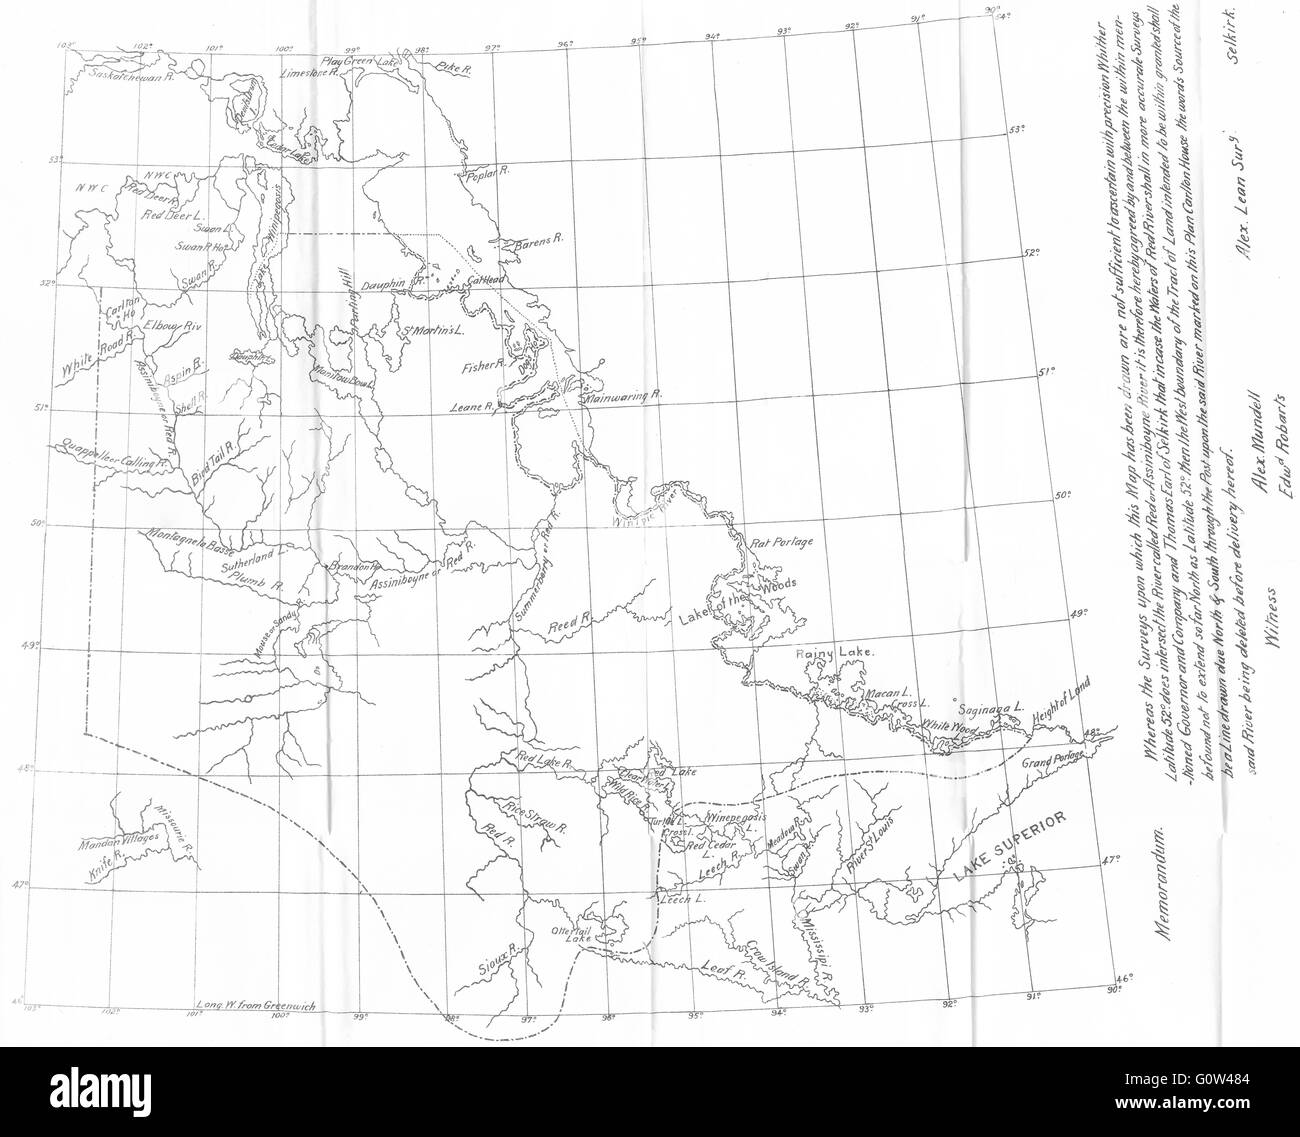 CANADA: Map Of The District Of Assiniboia, 1811, 1914   Stock Image